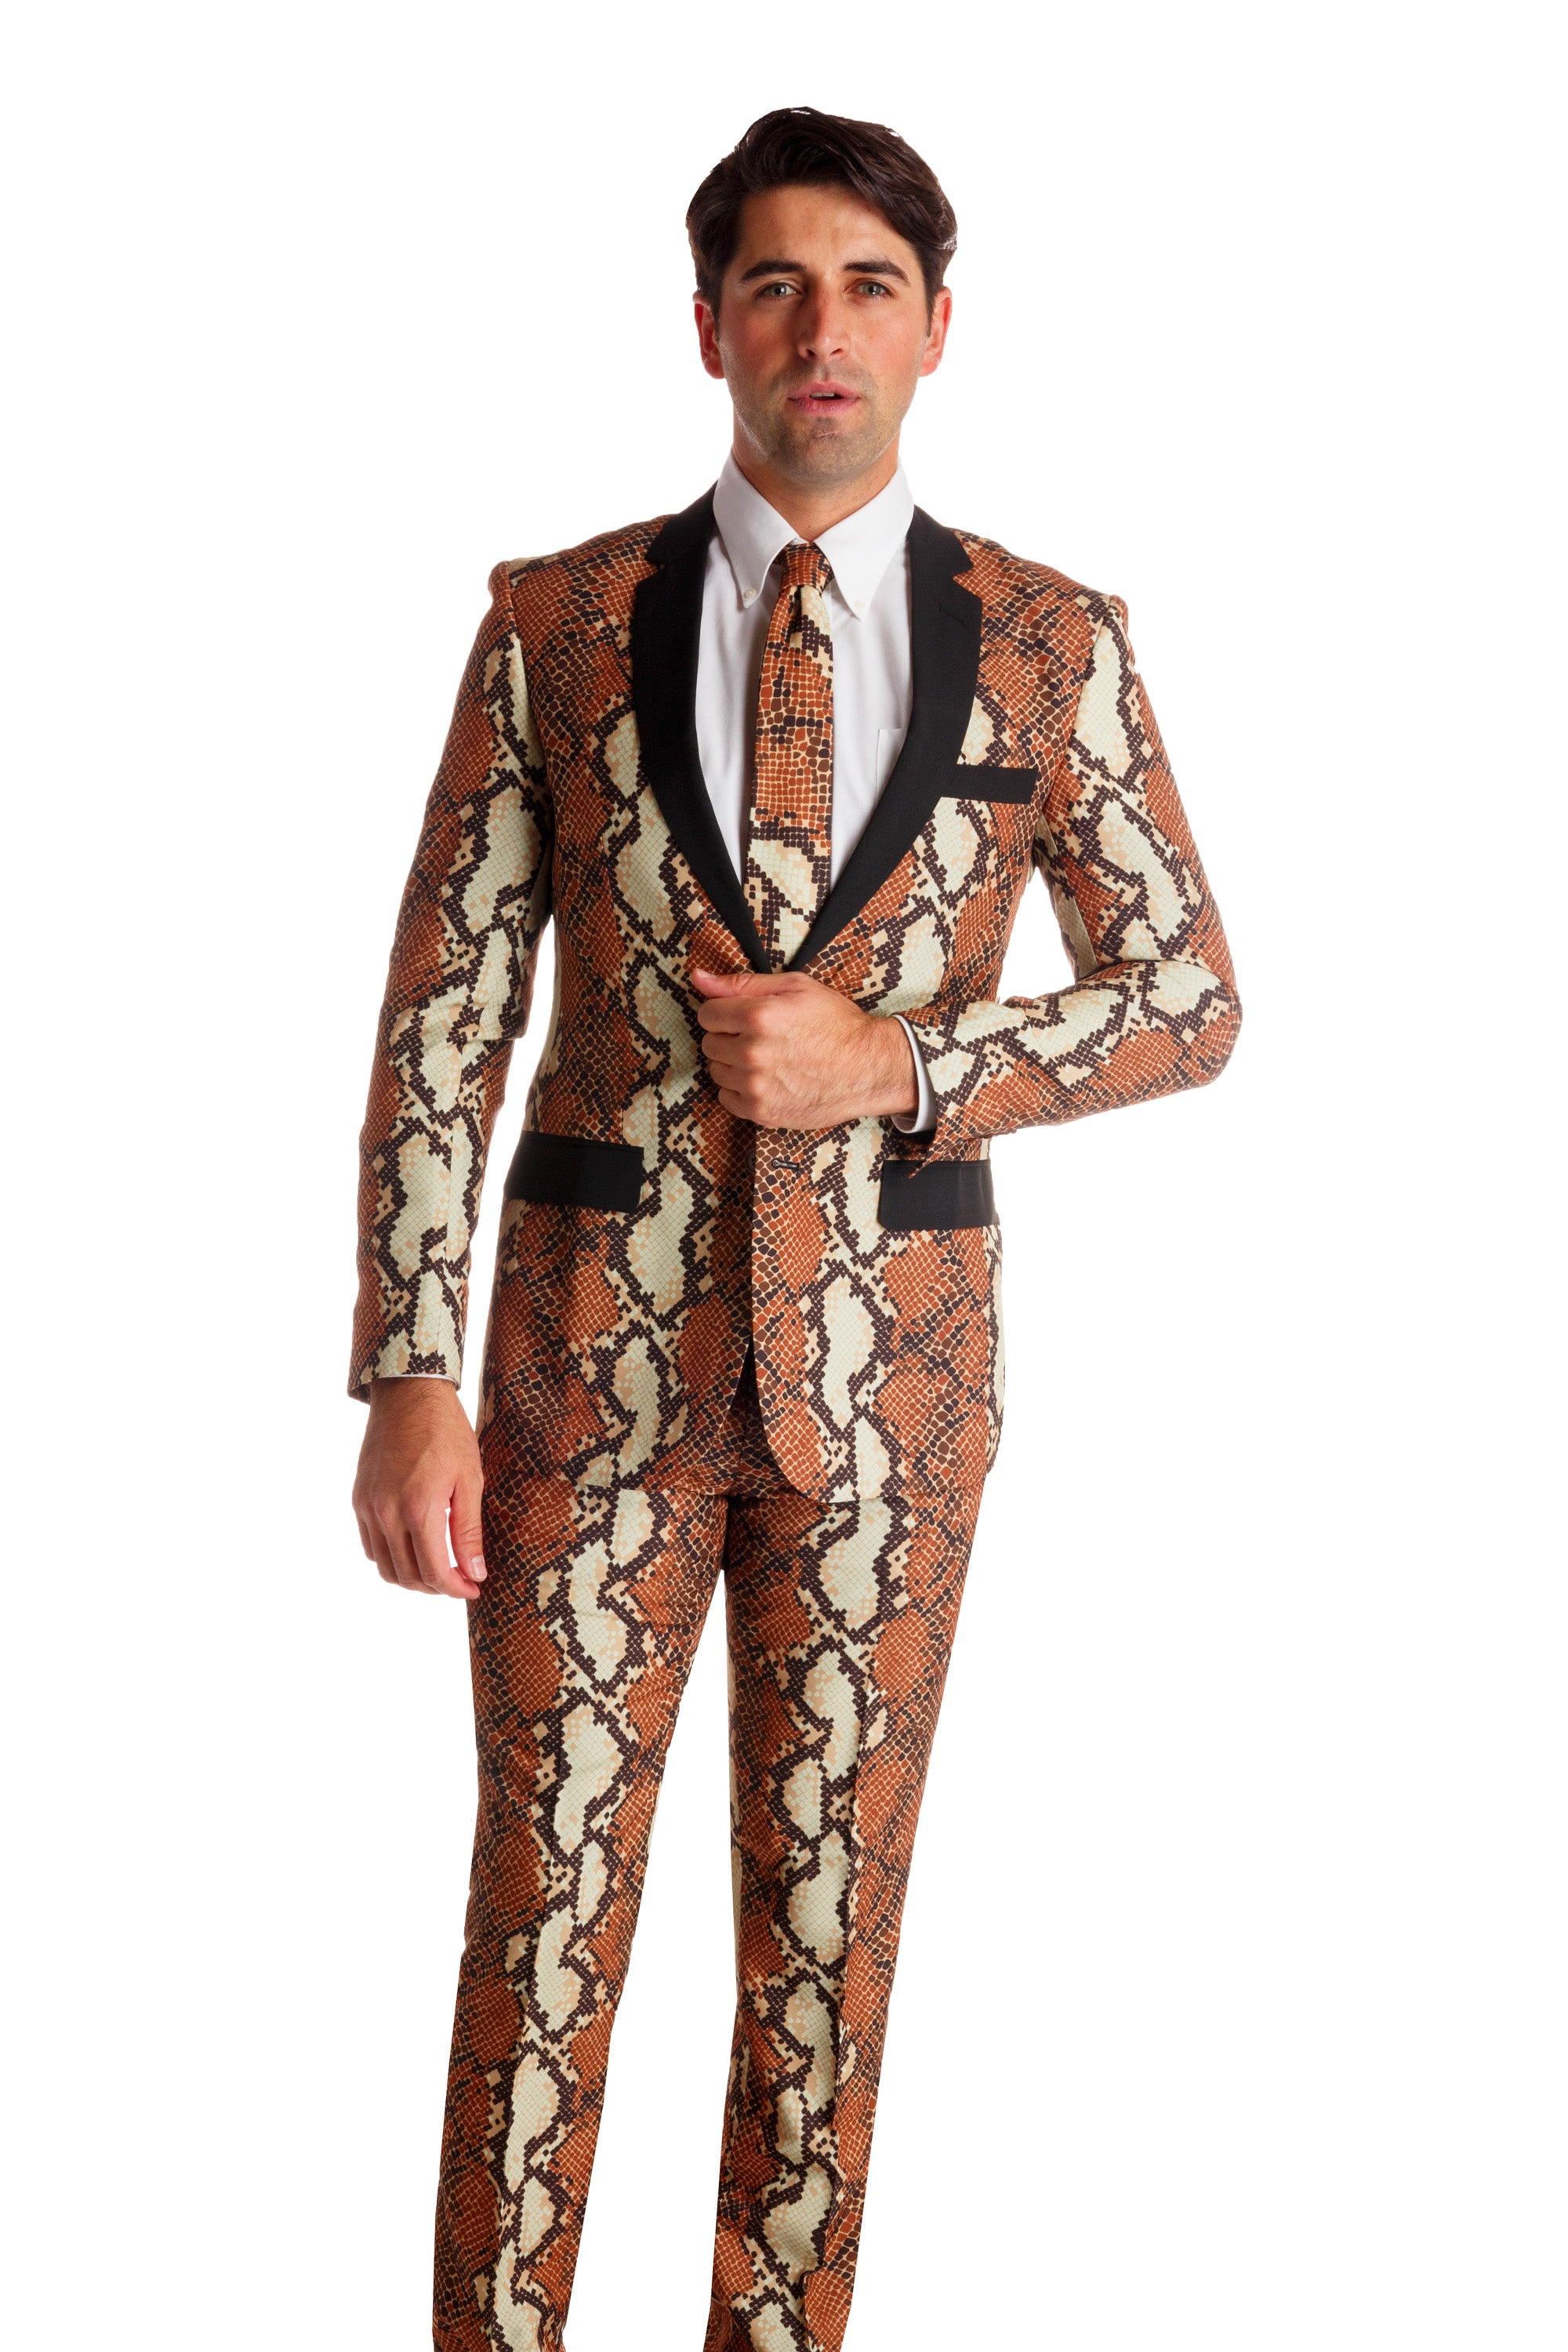 Snake Skin Suit The Rattlesnakes And Condoms